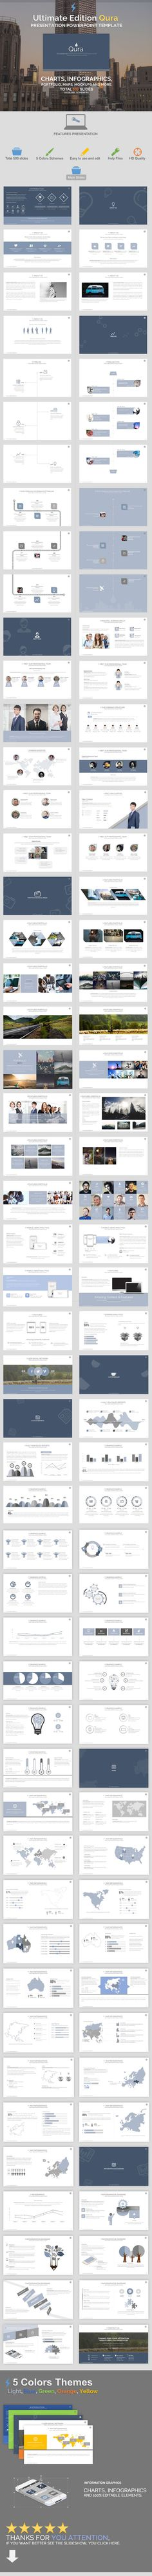 Ultimate Edition Qura - Powerpoint Template #design Download: http://graphicriver.net/item/ultimate-edition-qura-powerpoint-template/11715061?ref=ksioks